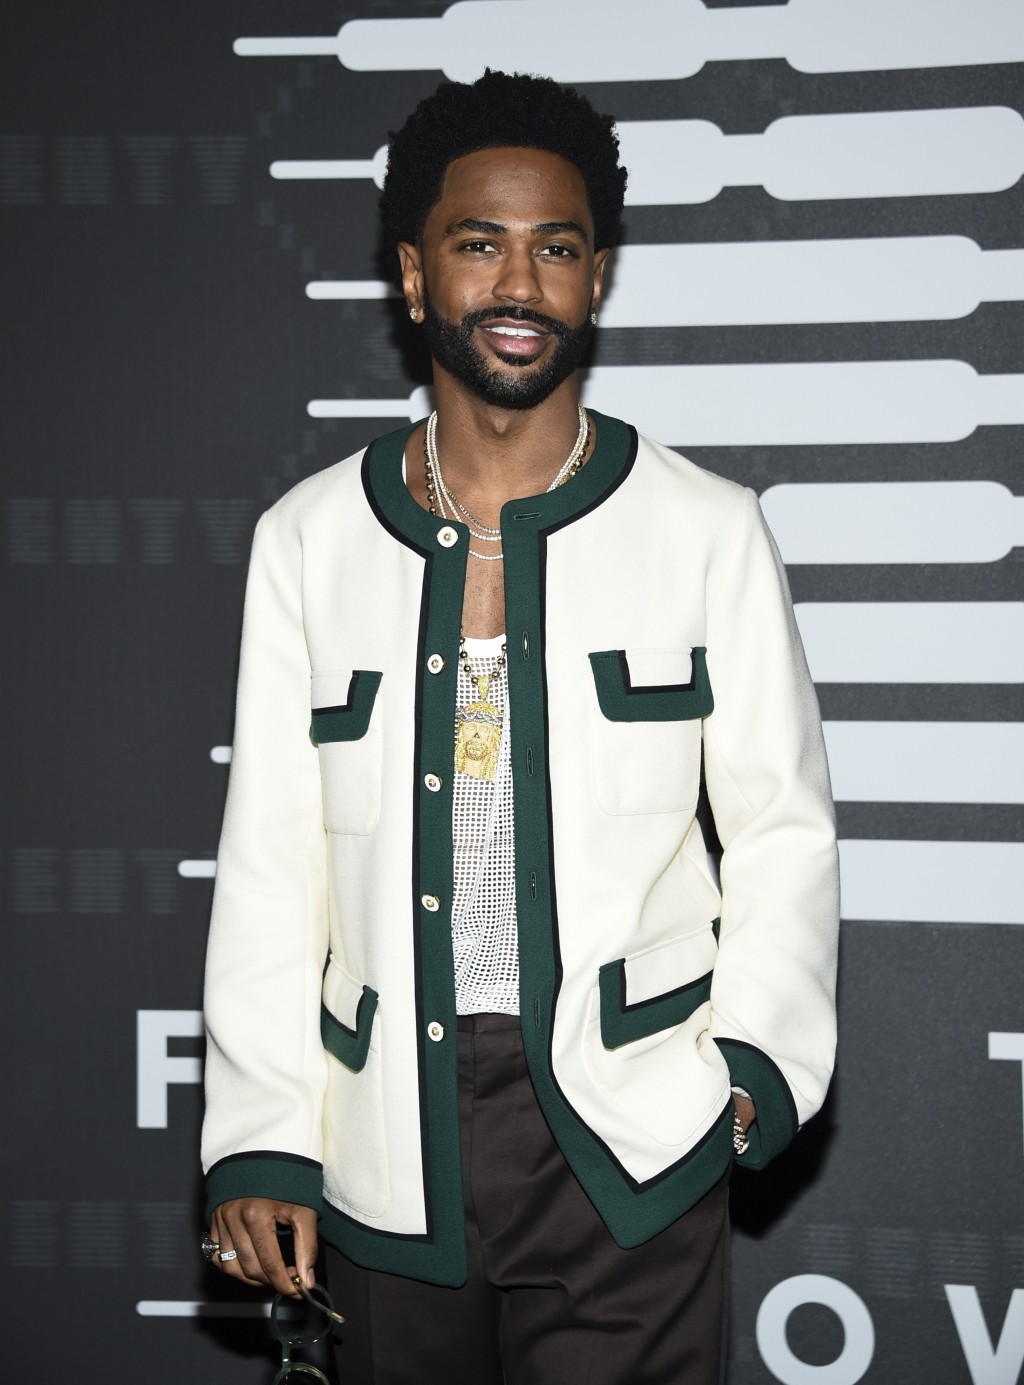 Rapper Big Sean attends the Spring/Summer 2020 Savage X Fenty show, presented by Amazon Prime, at the Barclays Center on Tuesday, Sept, 10, 2019, in N...